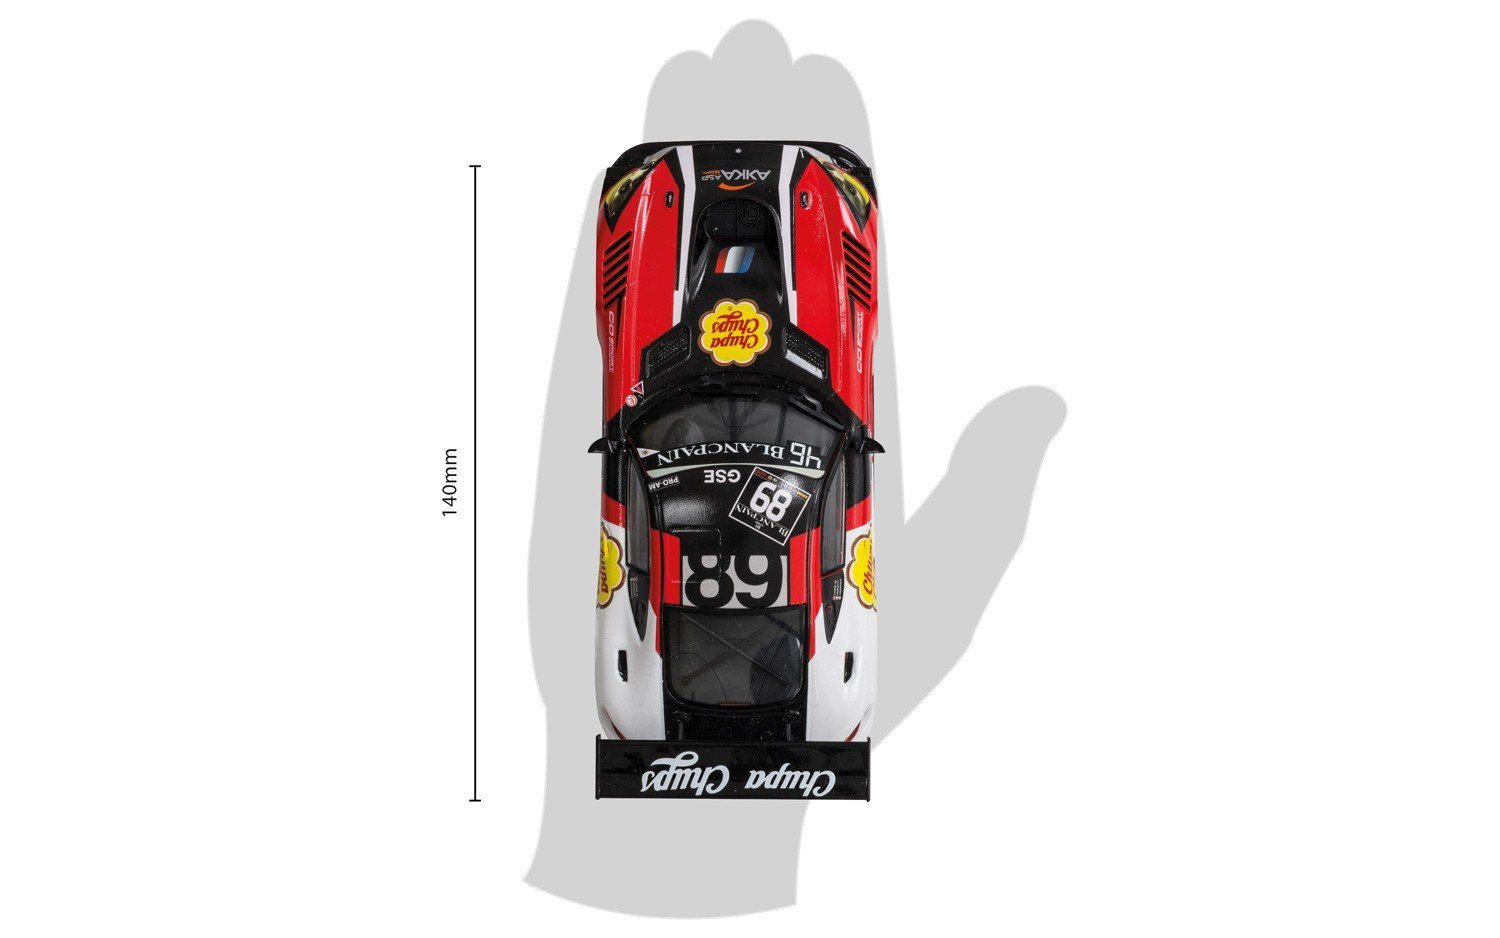 Scalextric C1356T ARC ONE Ultimate Rivals Slot Car Set by Scalextric (Image #7)